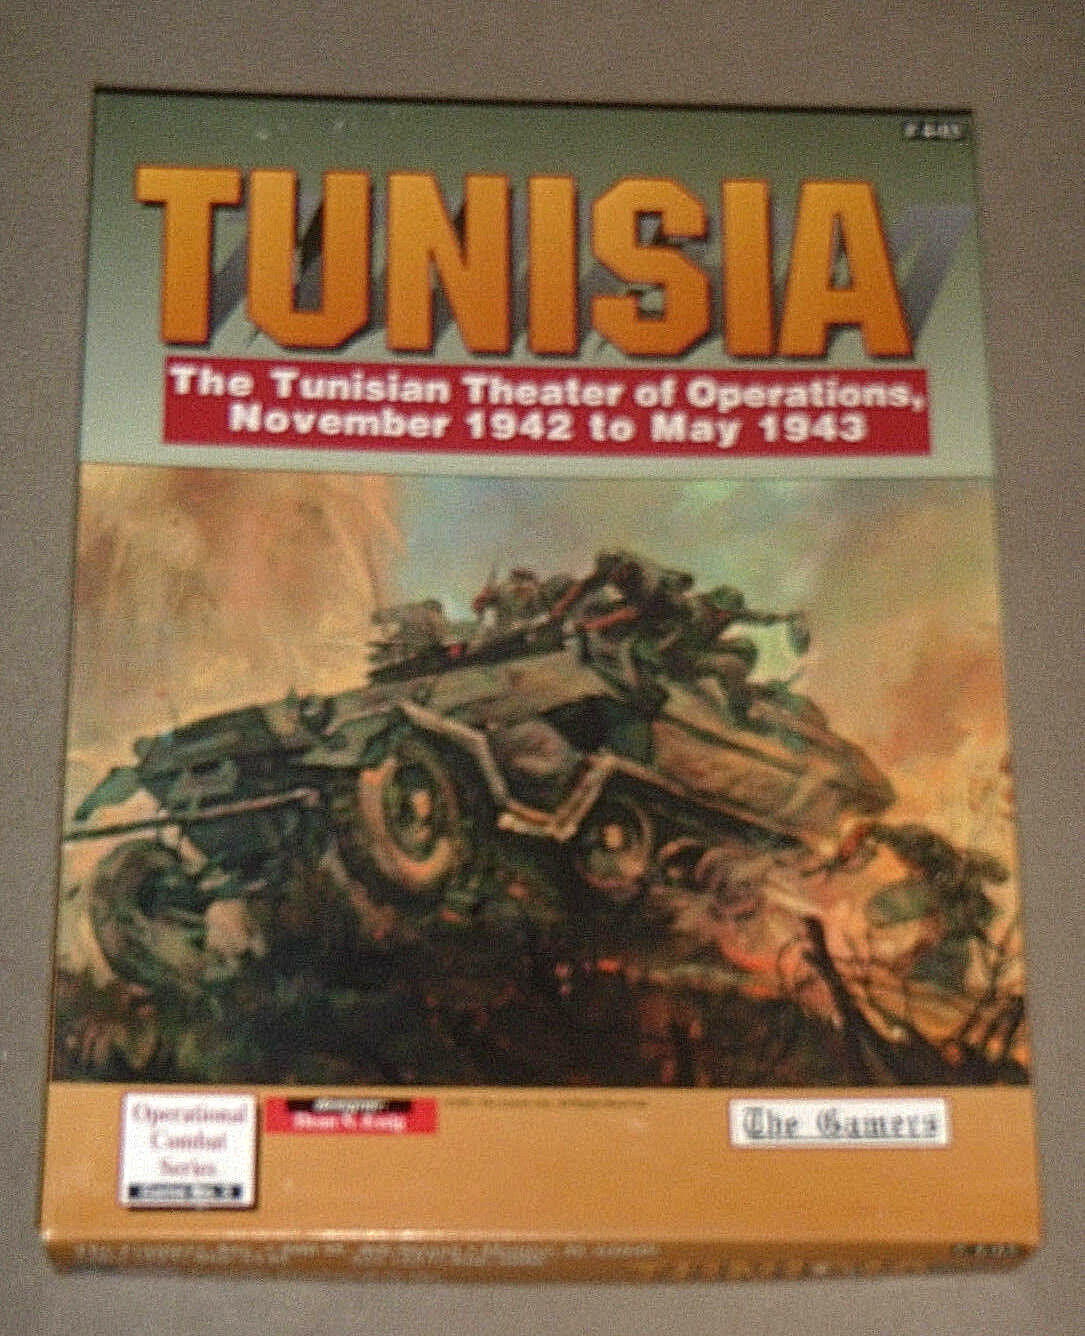 Tunisia   November 1942 - May 1943 - The Gamers {UNUSED-UNPUNCHED-100% COMPLETE}